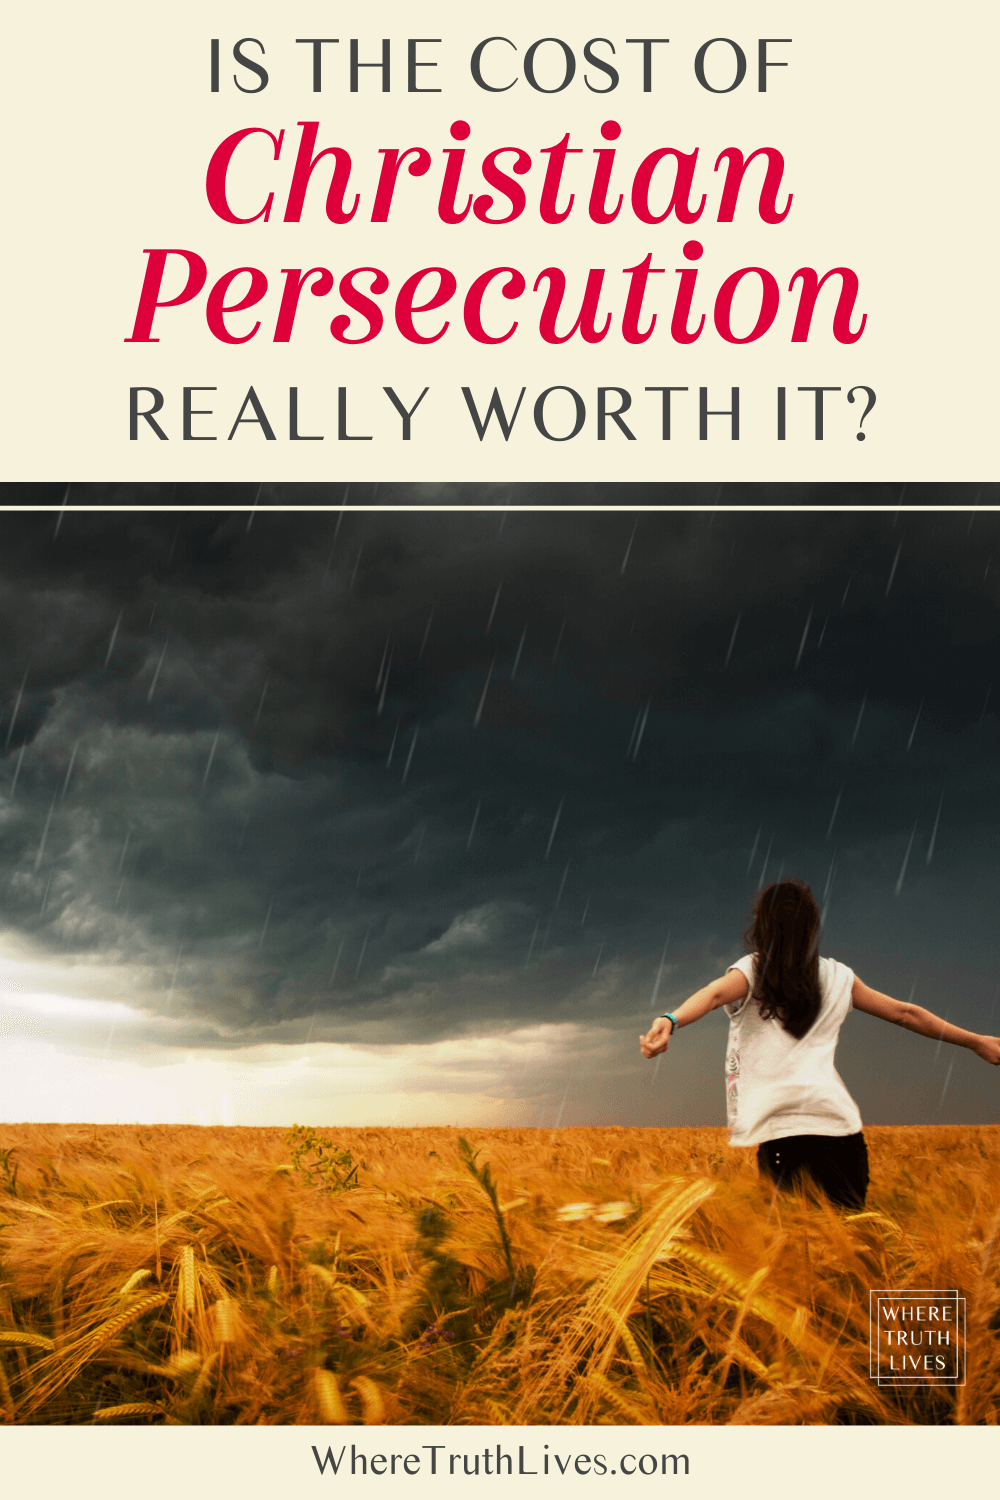 Is The Cost of Christian Persecution Really Worth It?